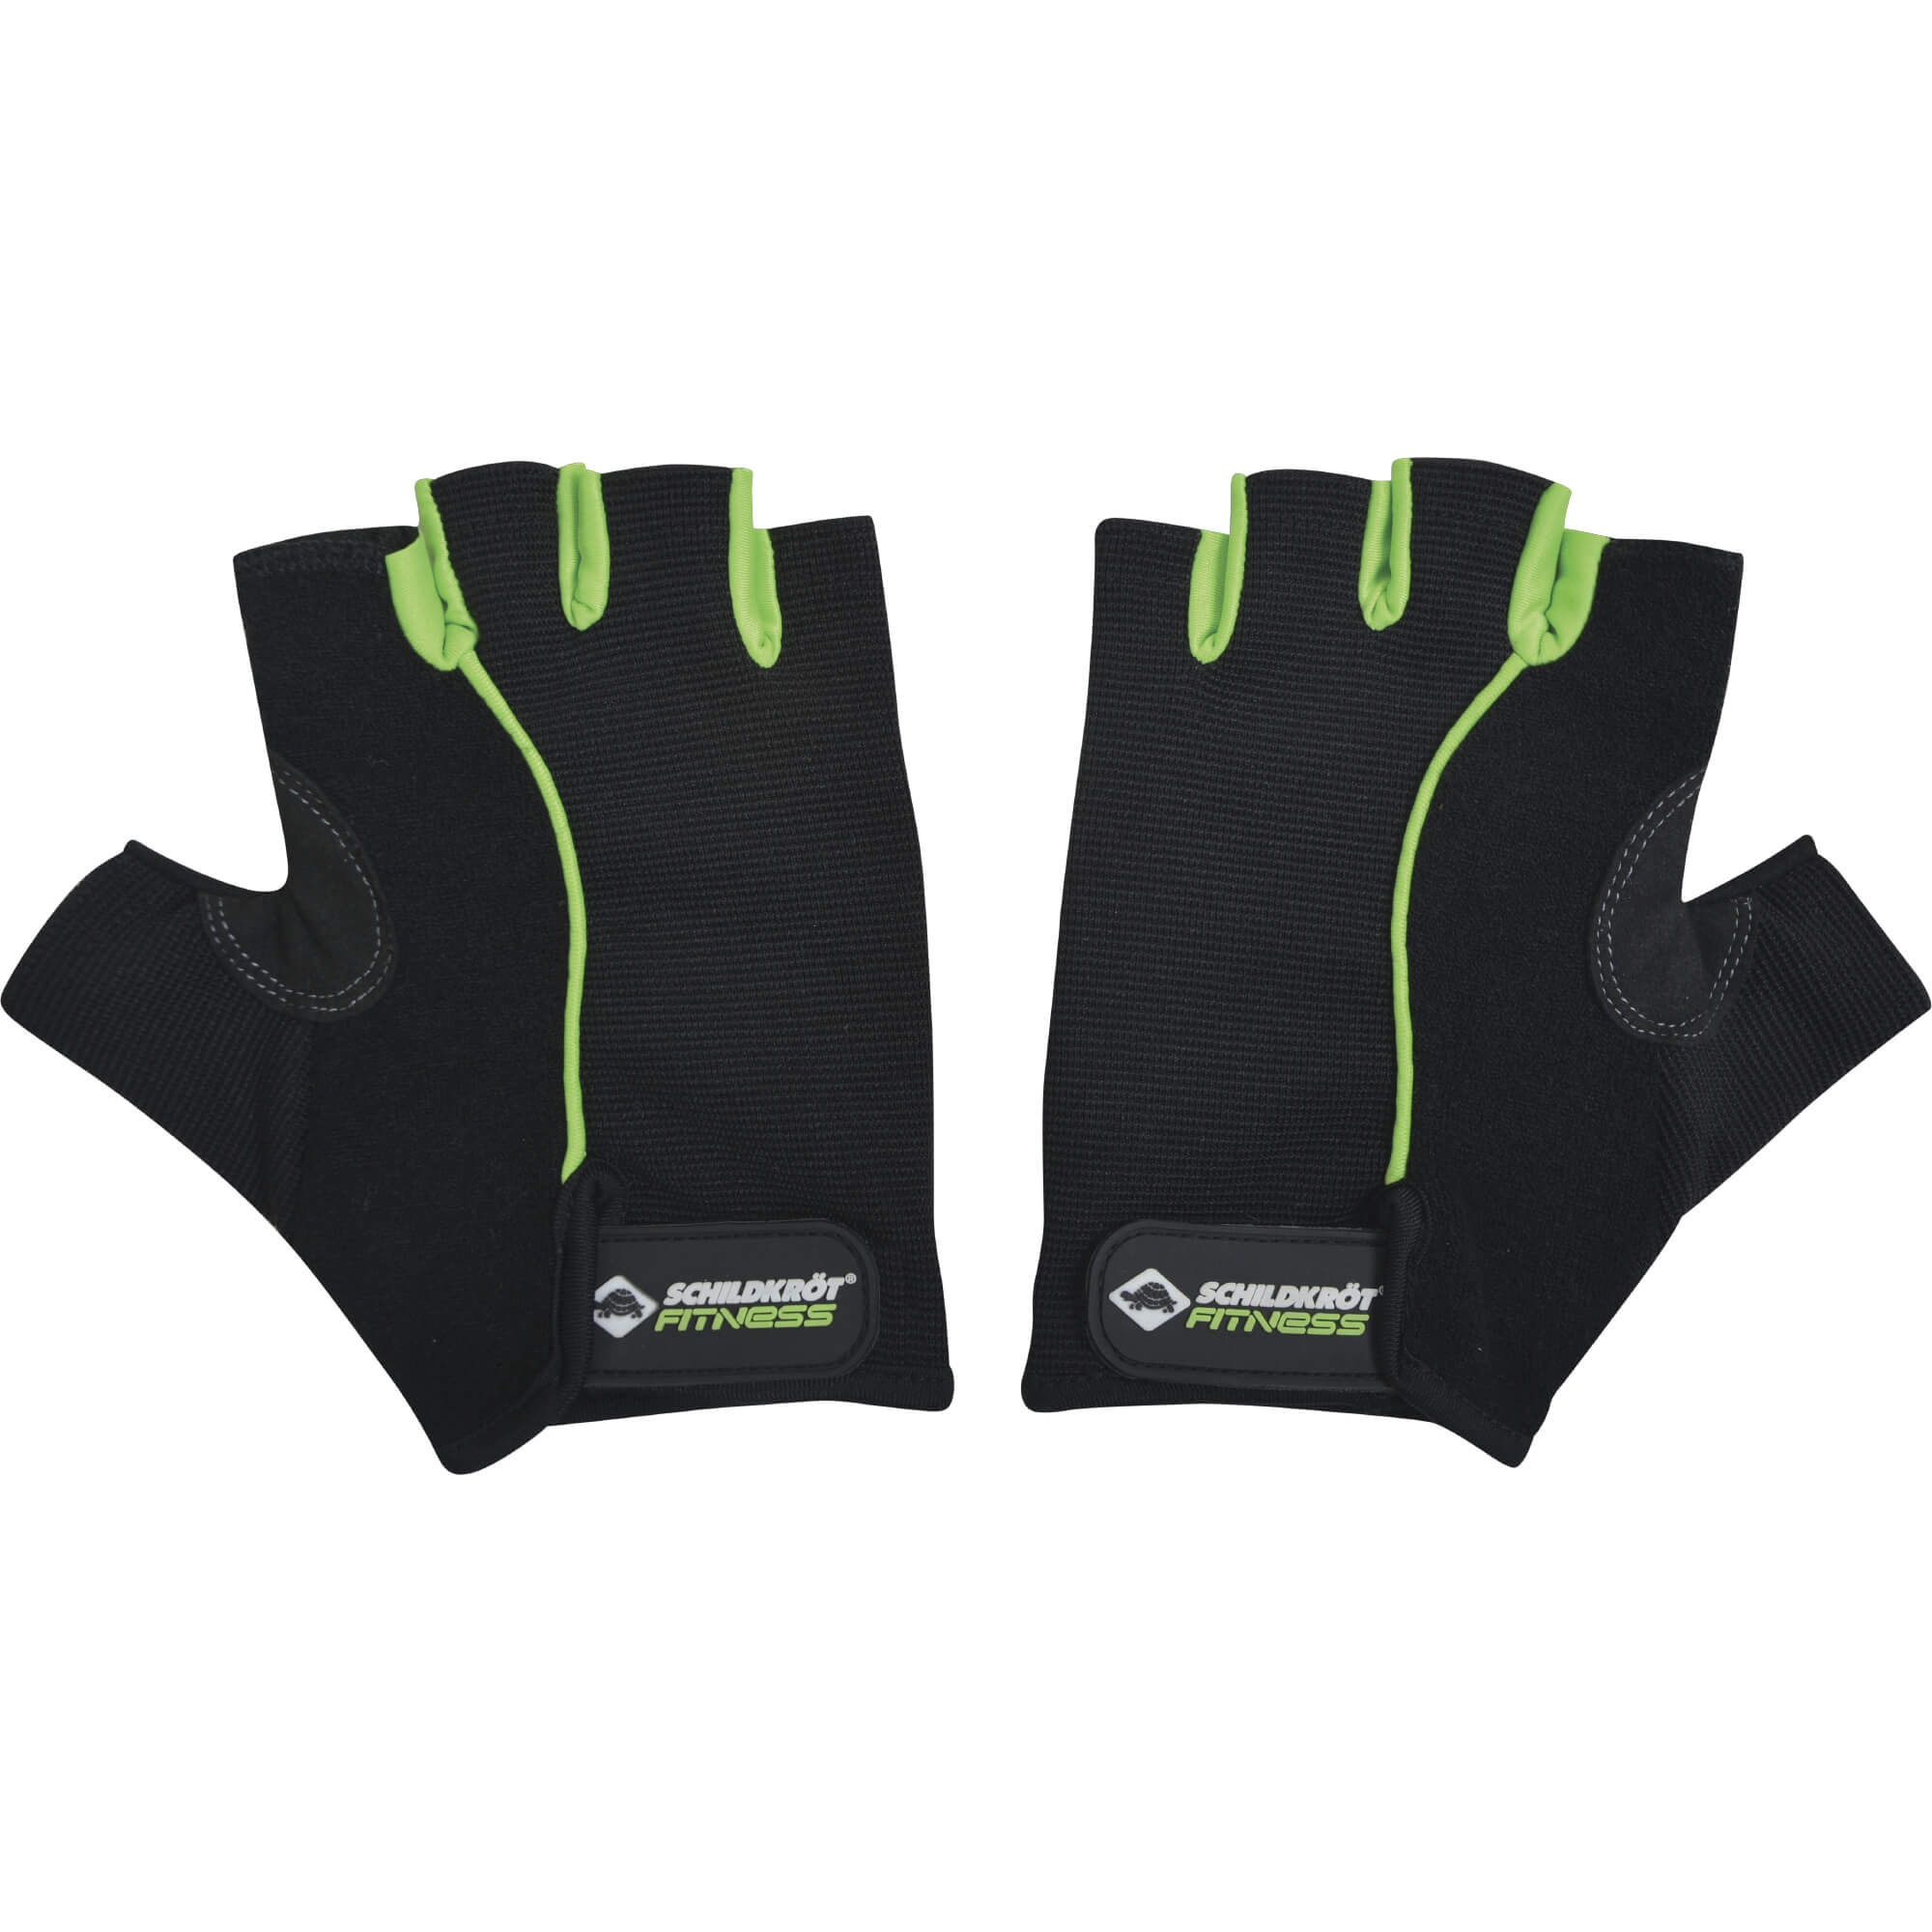 Fitness Gloves Comfort imagine